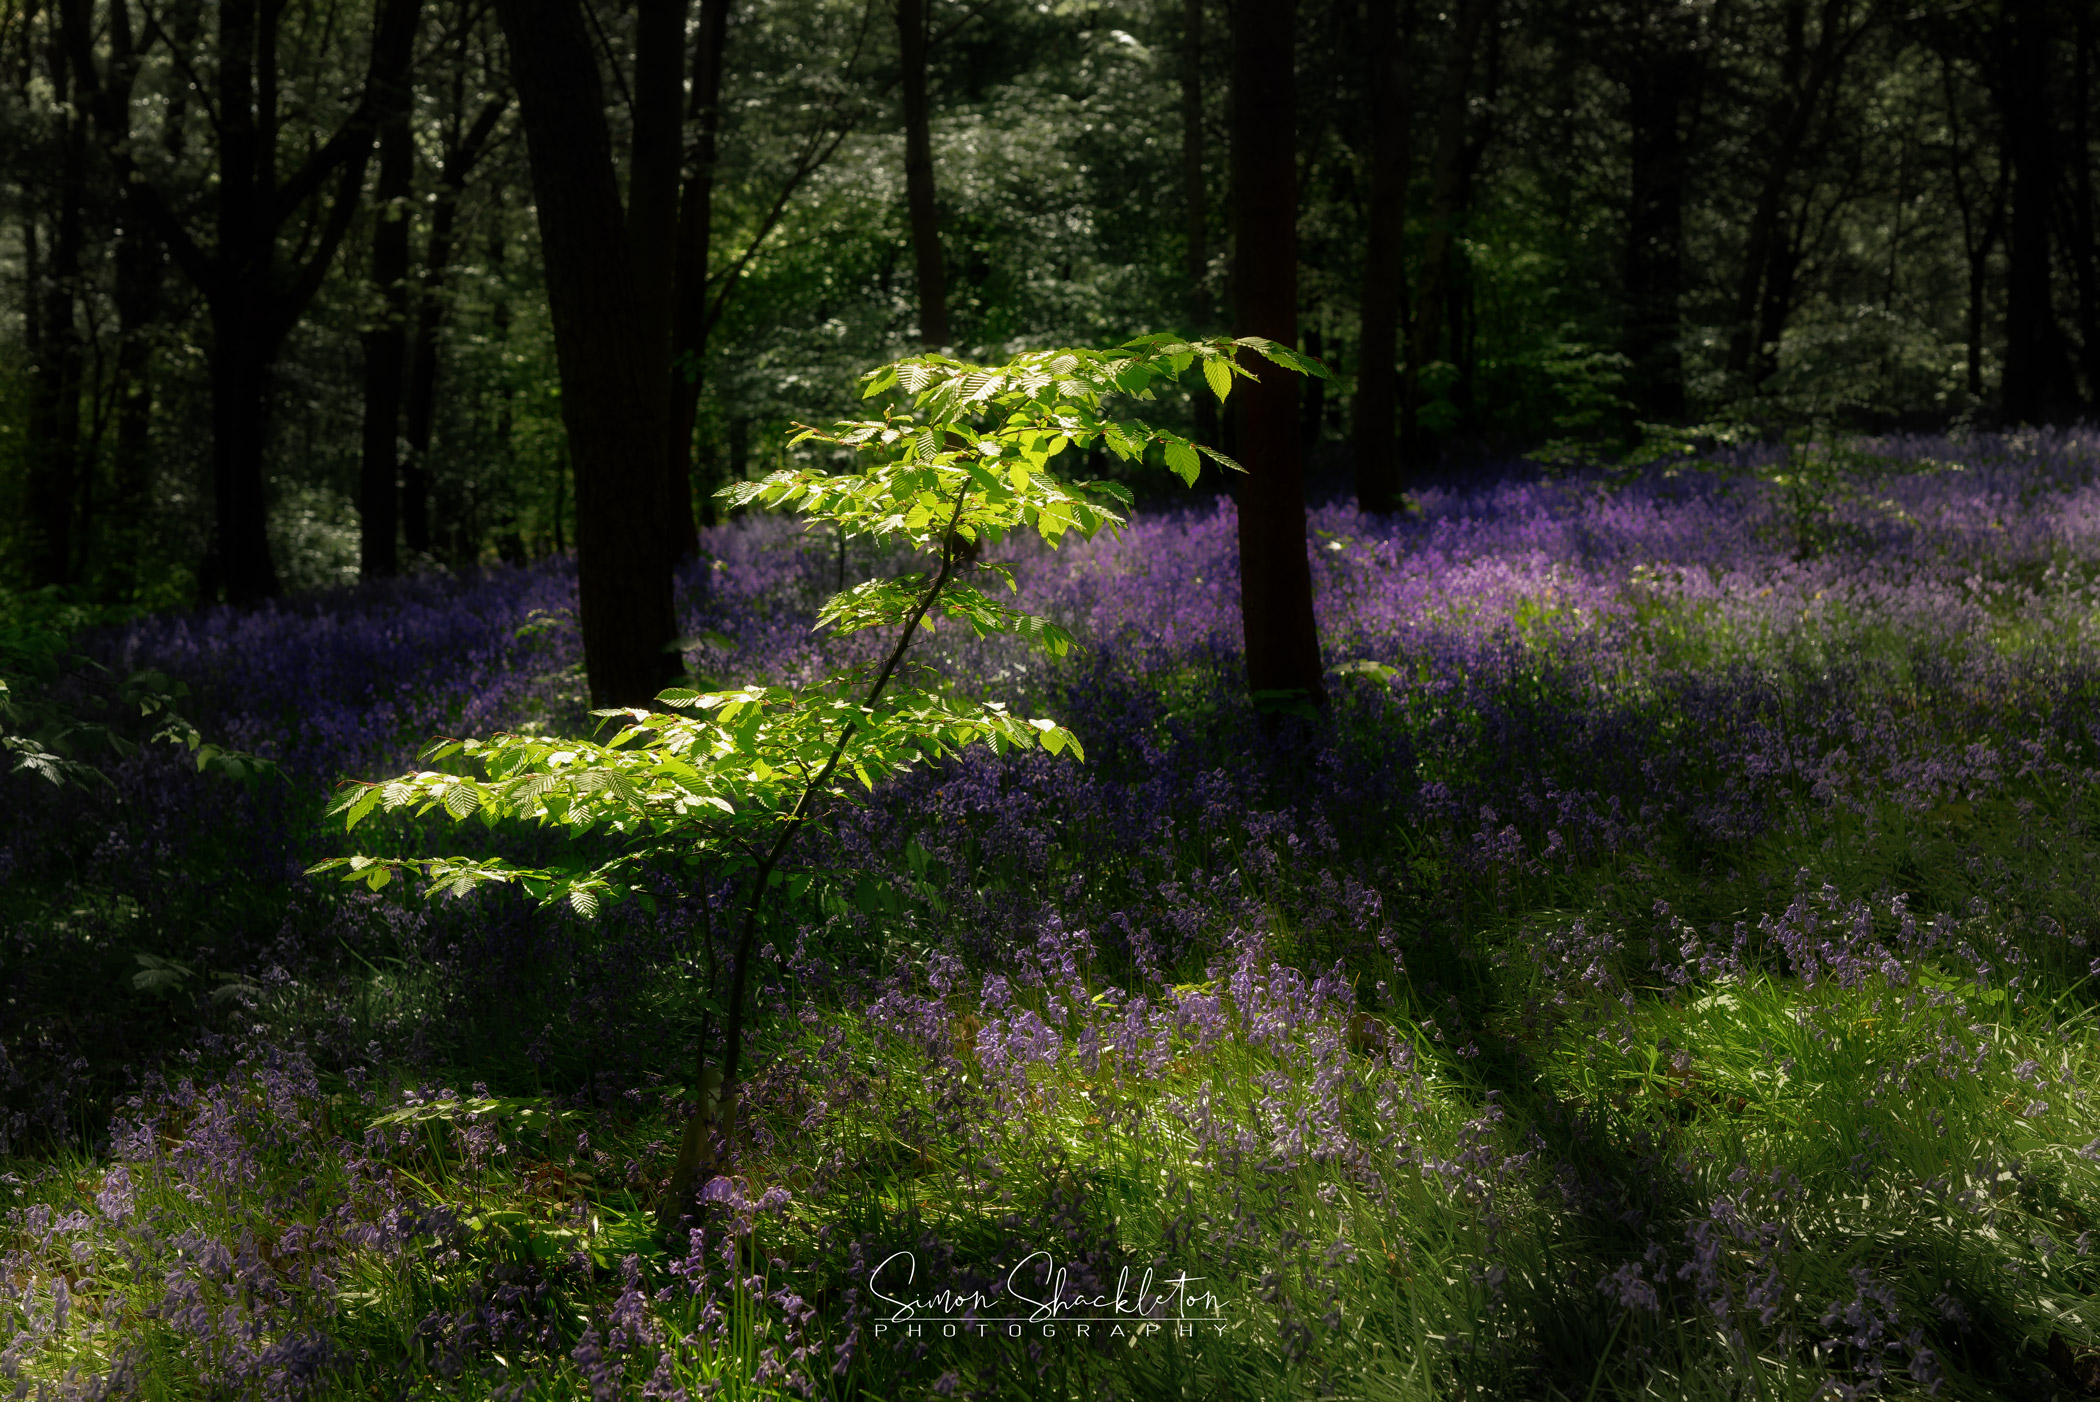 Bluebells at Hole Park, Kent, shot in bright sunlight, mid-afternoon.